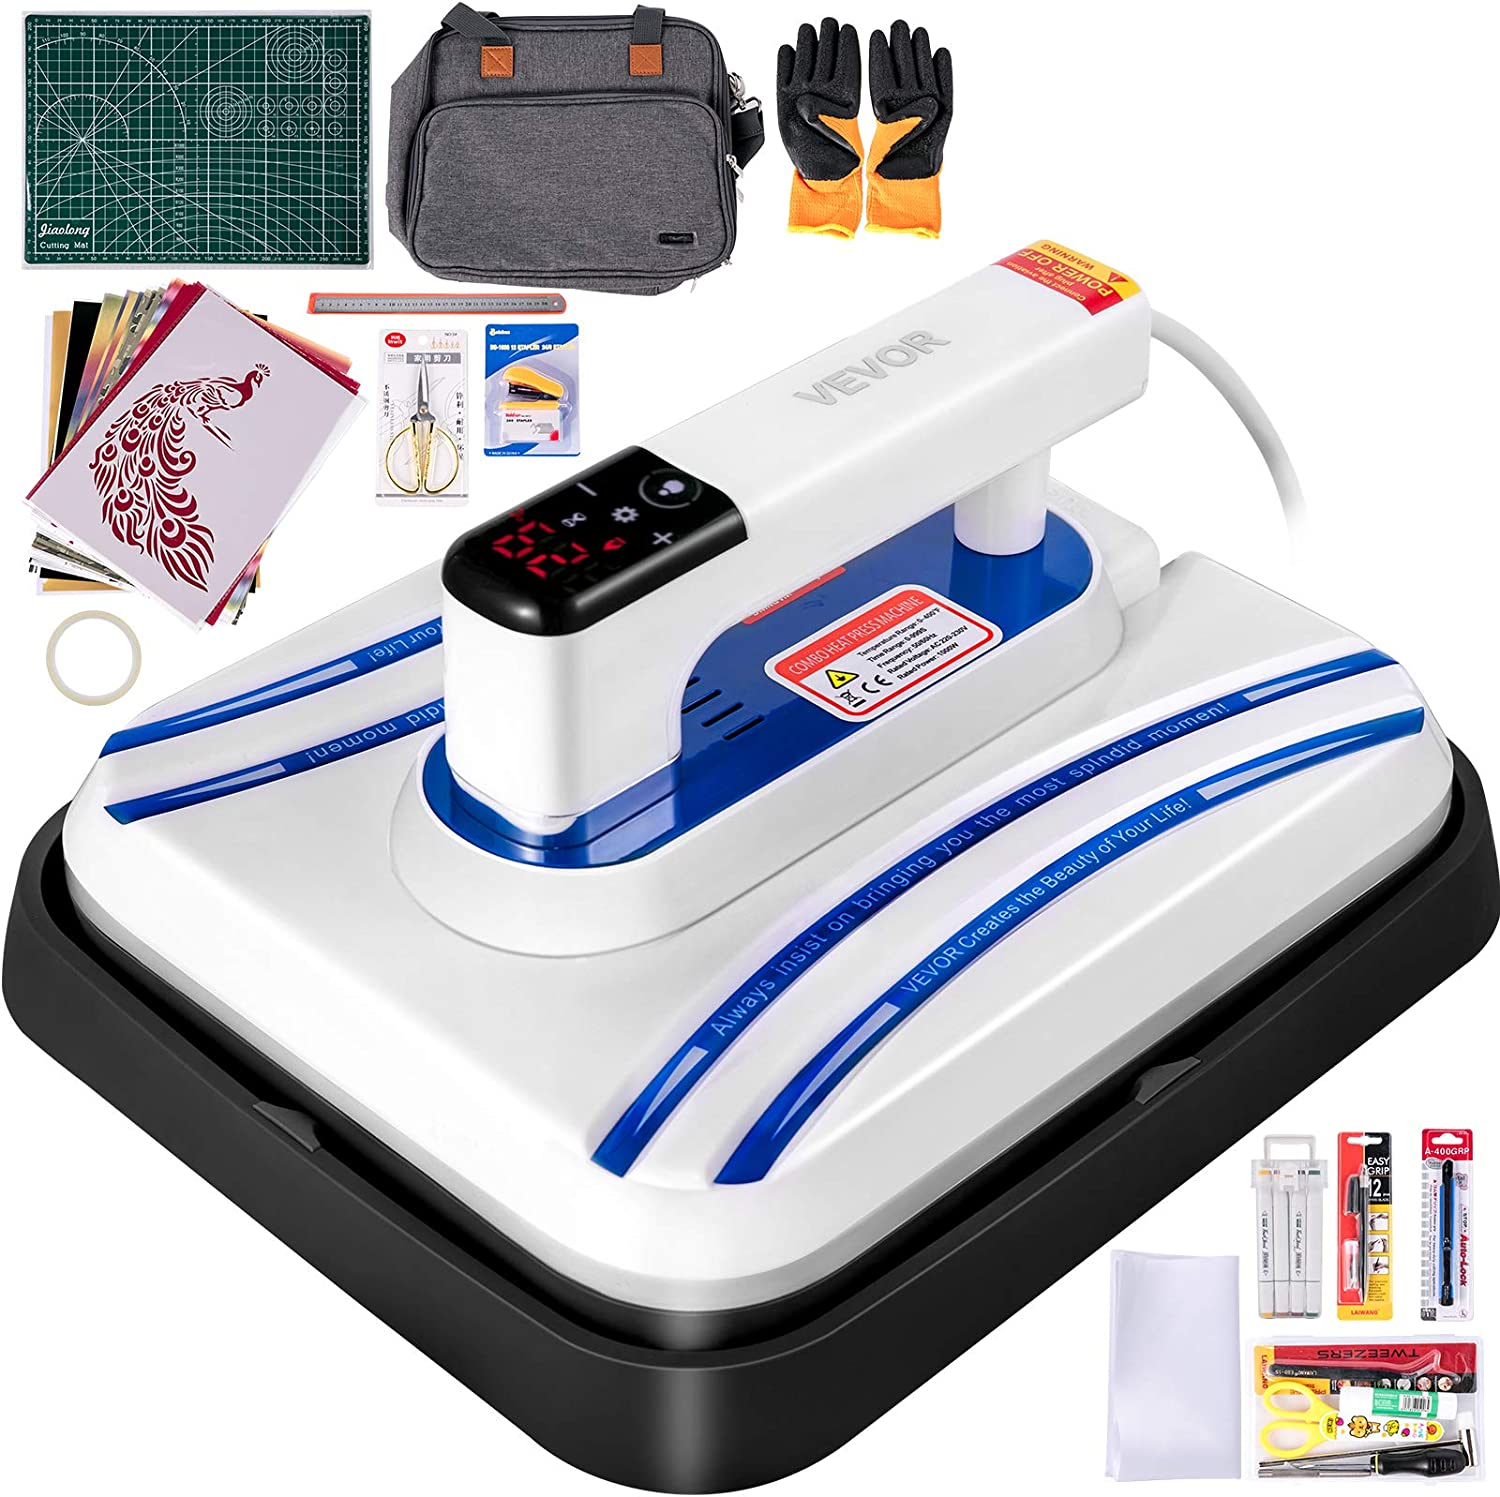 Automatic Vibration Pressing Operation Upgraded Small Heat Press Machine with Professional Mode Easy Press Mini Mini HTV Iron-On Rolls with Carrying Case